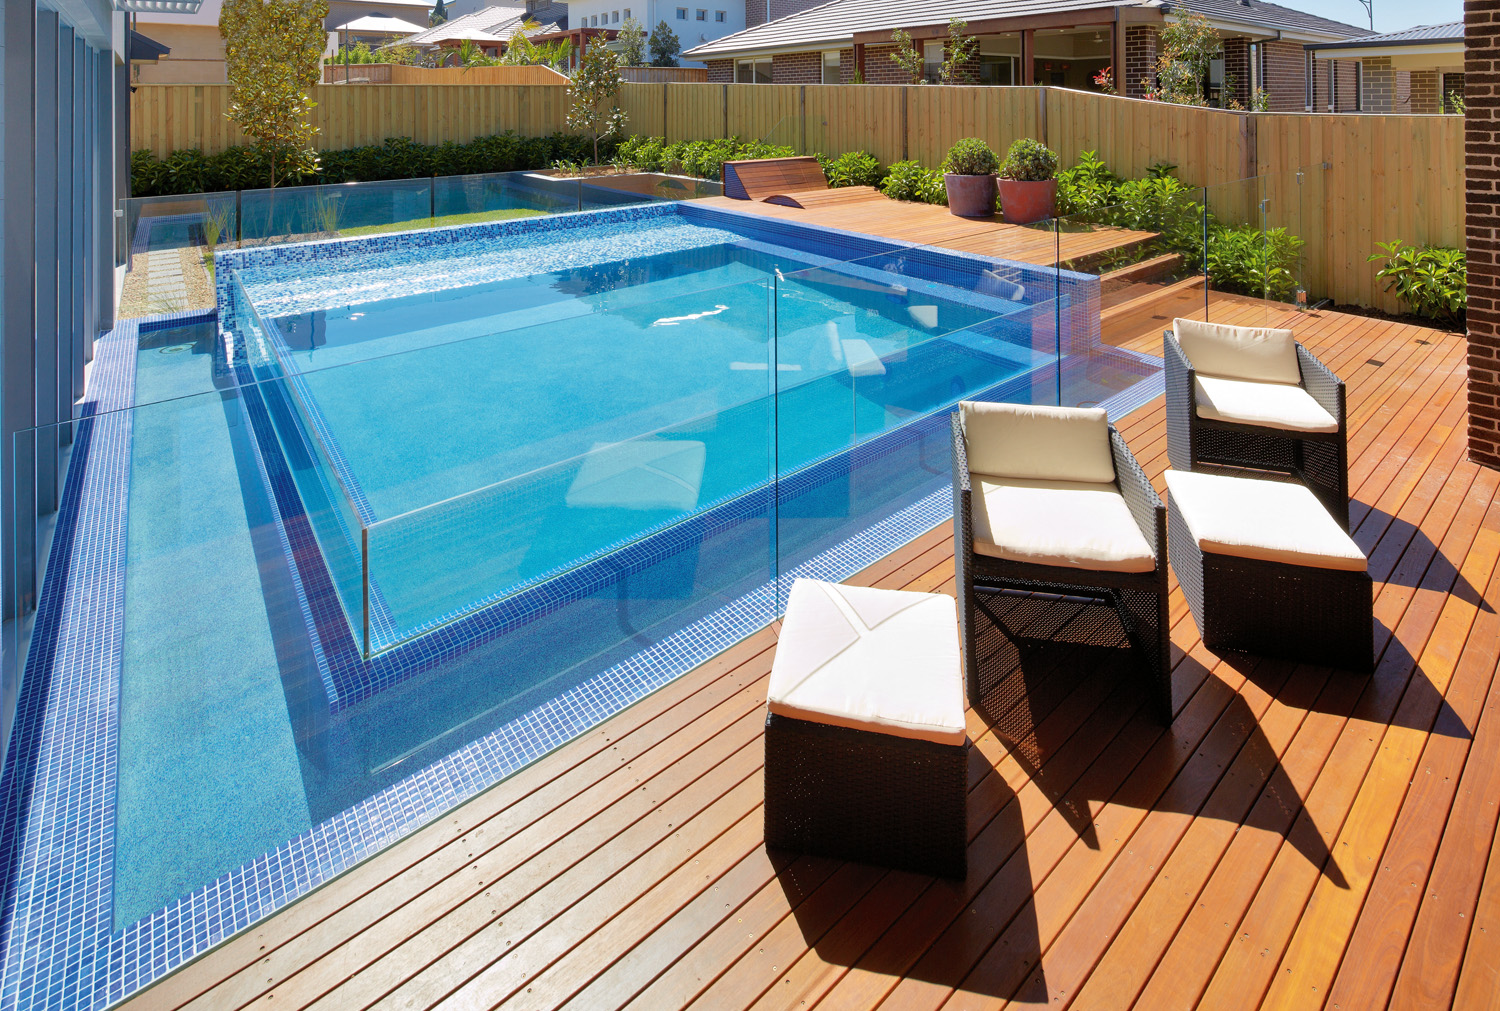 Entertainers paradise: a pool project